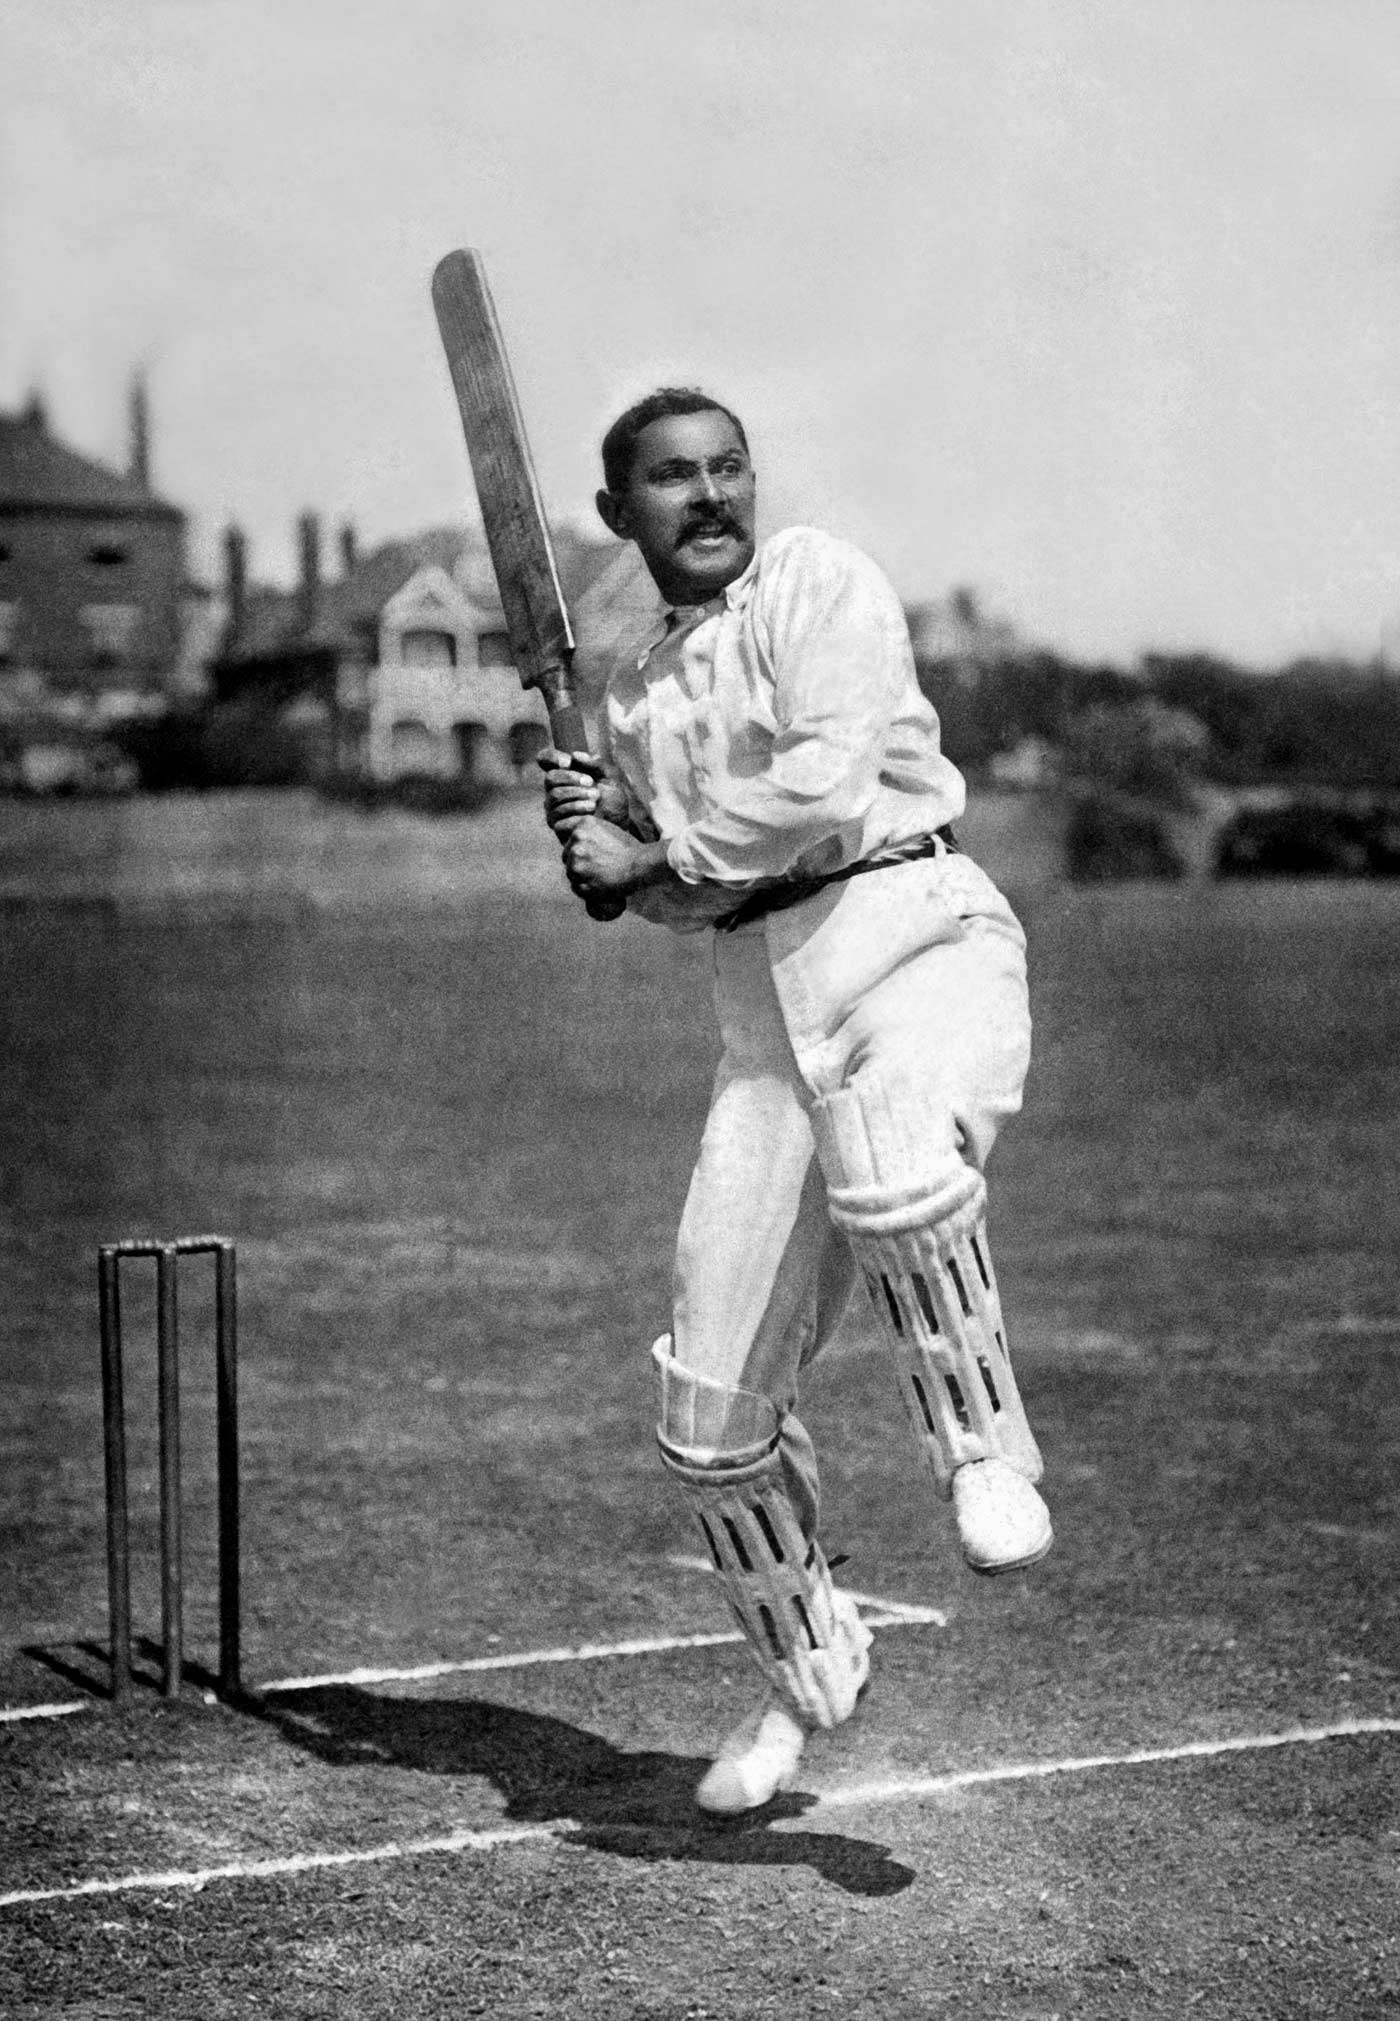 Hove, September 1904: Beldam's picture of Ranji that foreshadows the iconic image of Trumper the following year